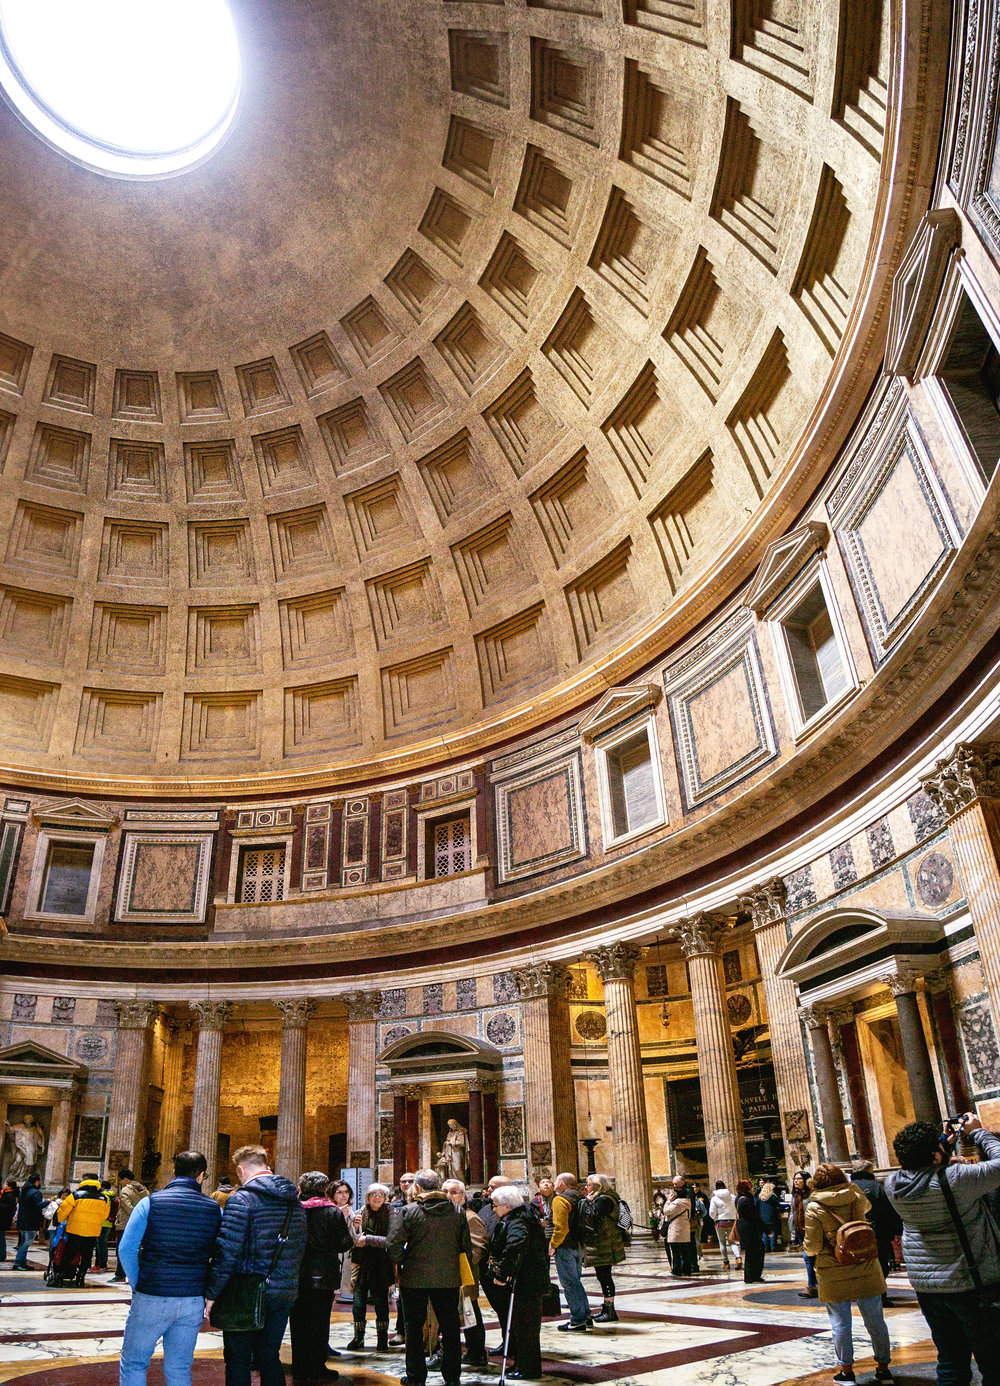 rome_pantheon_vickygood_travel_photography2sm.jpg